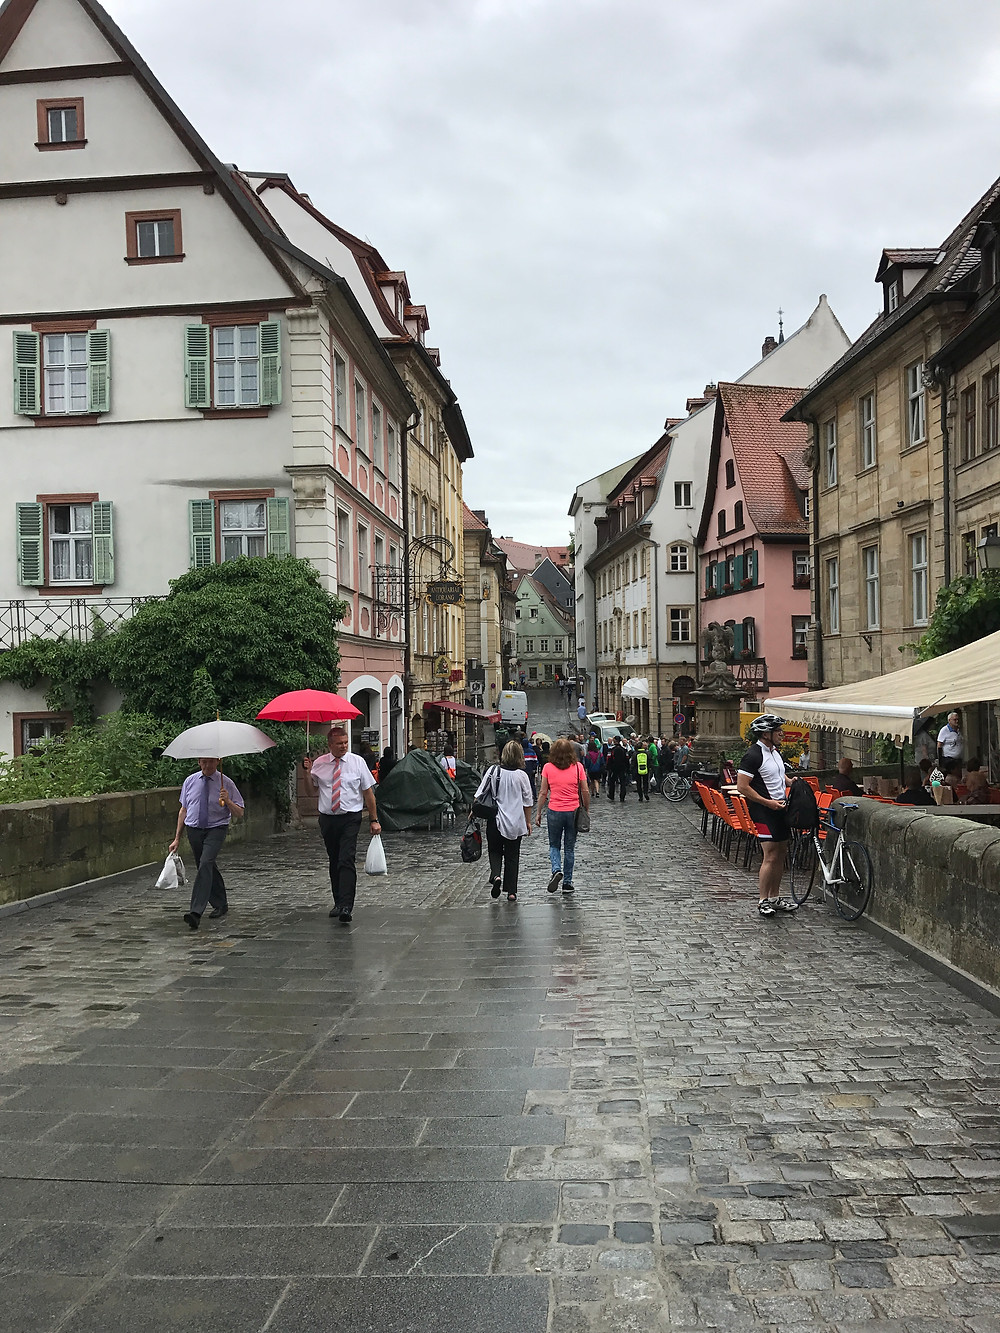 The streets of Nuremberg